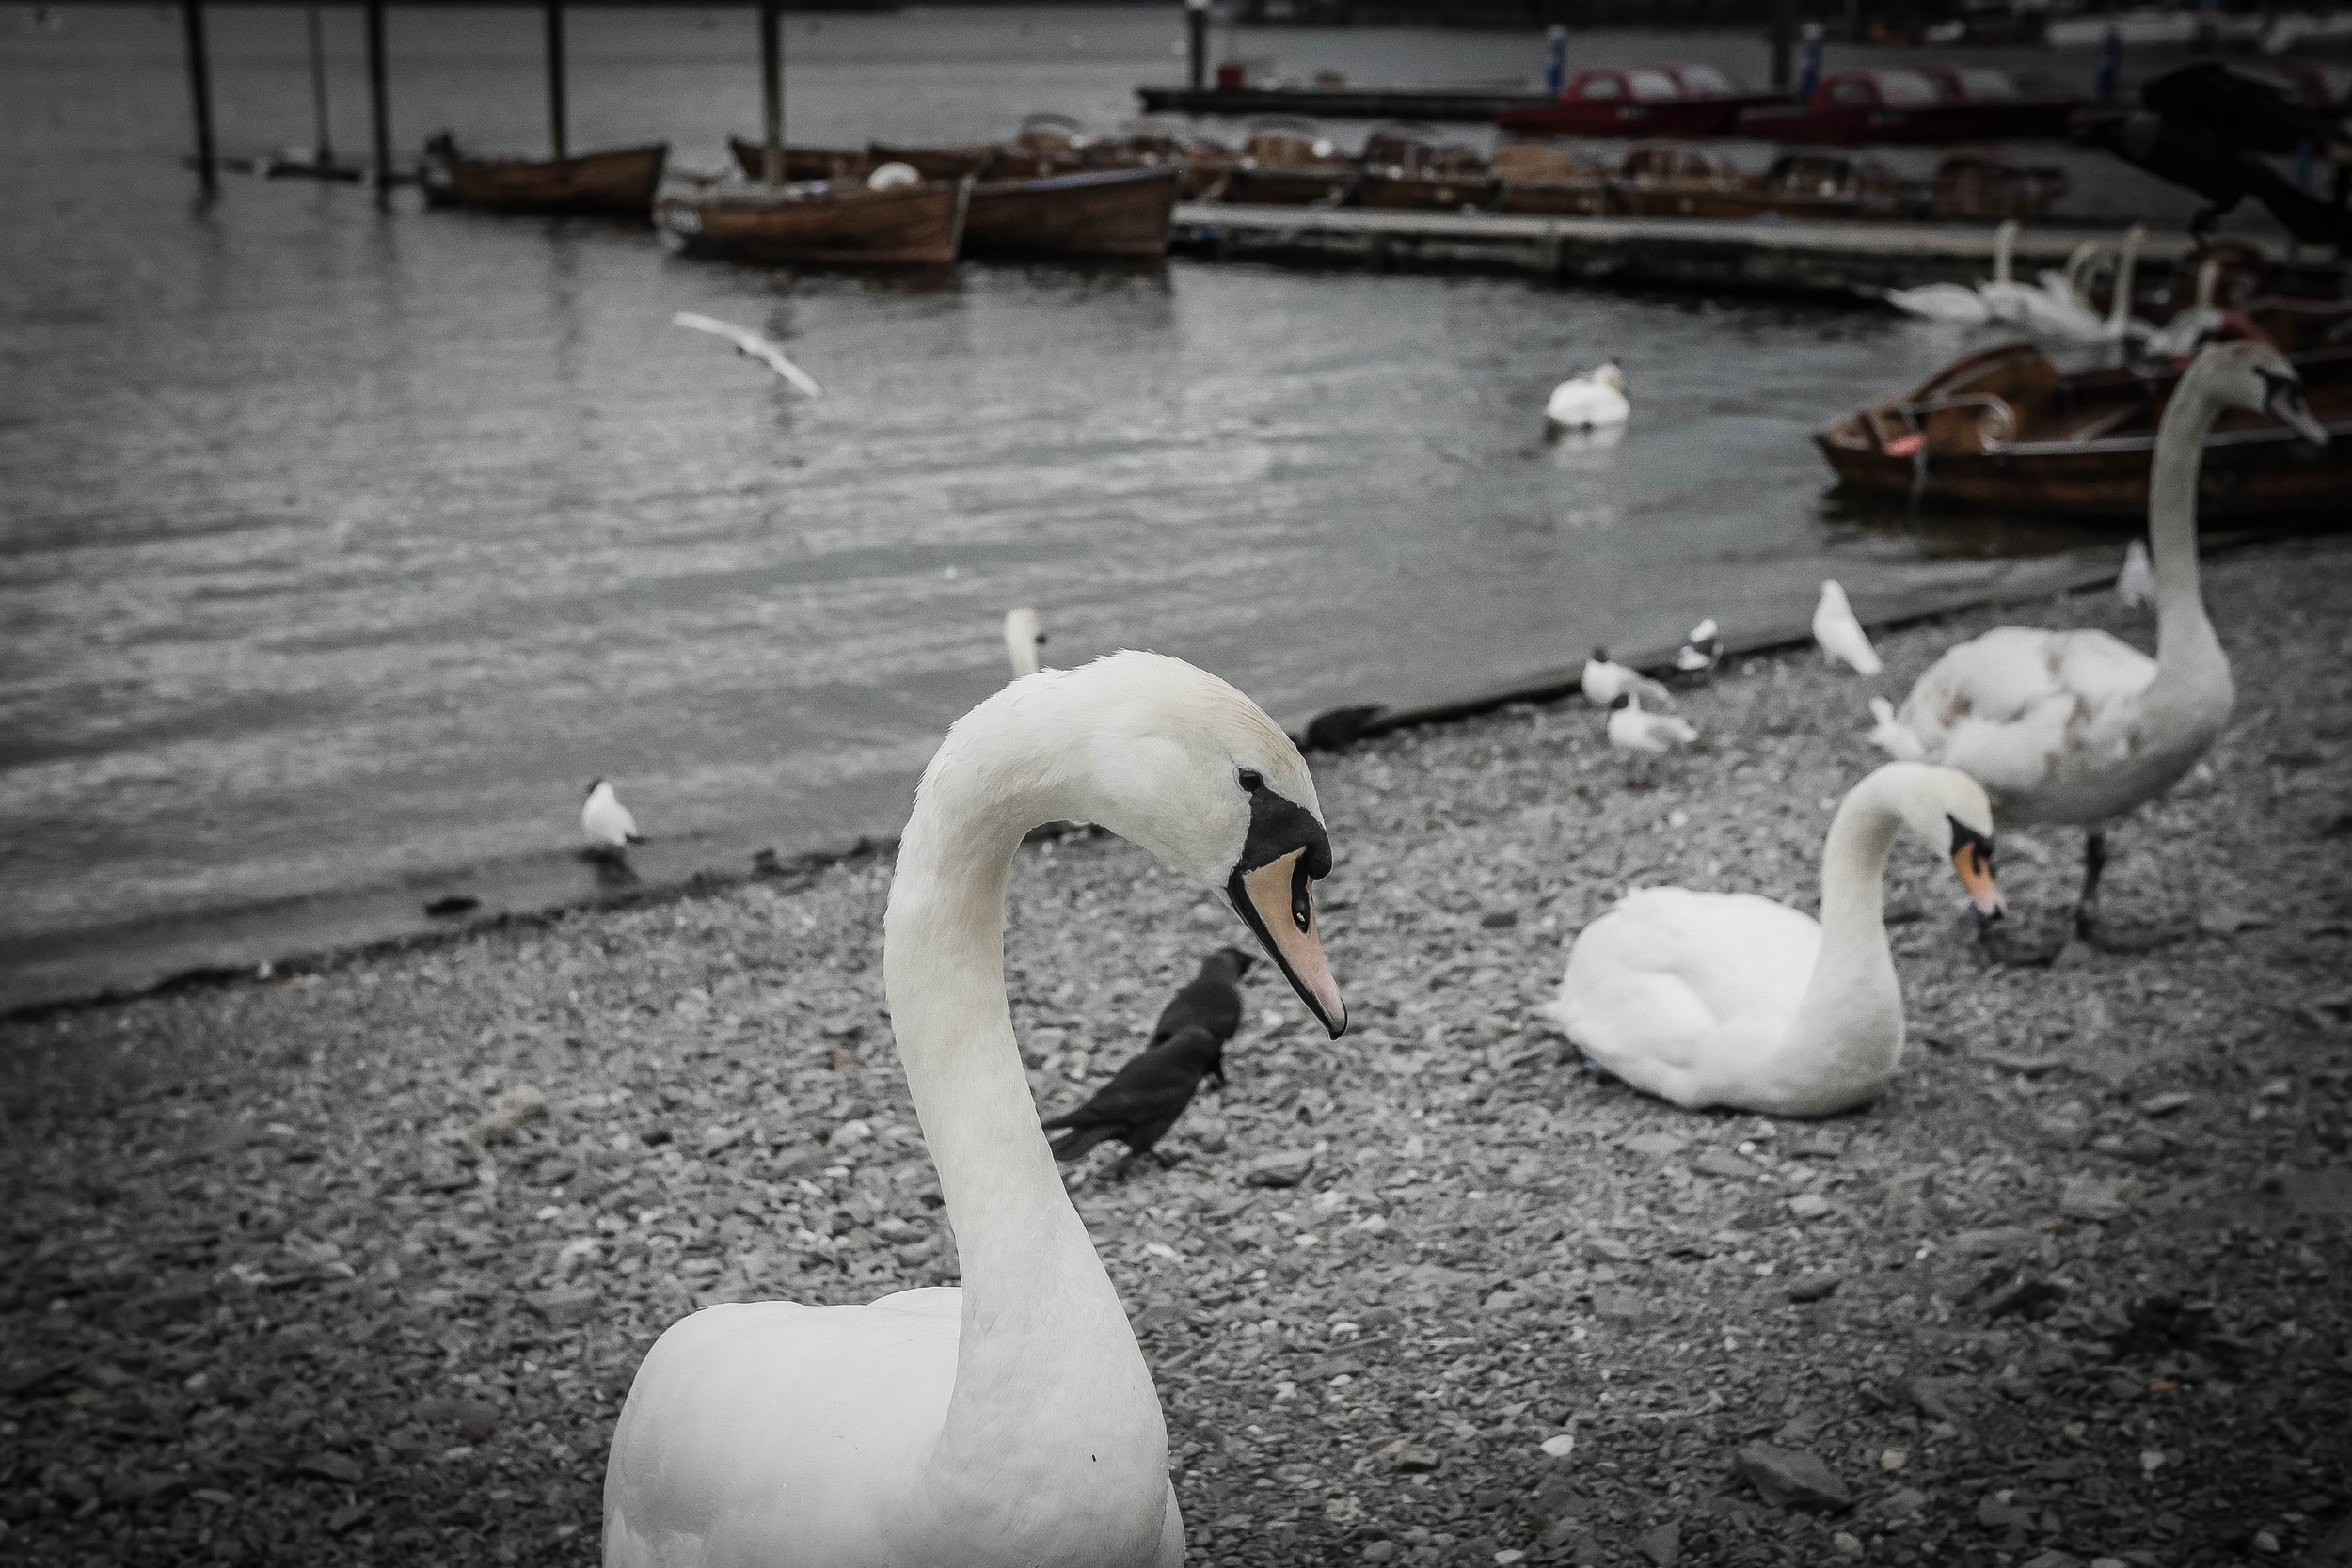 Swans joining the party in Bowness. These are some well-fed birds!